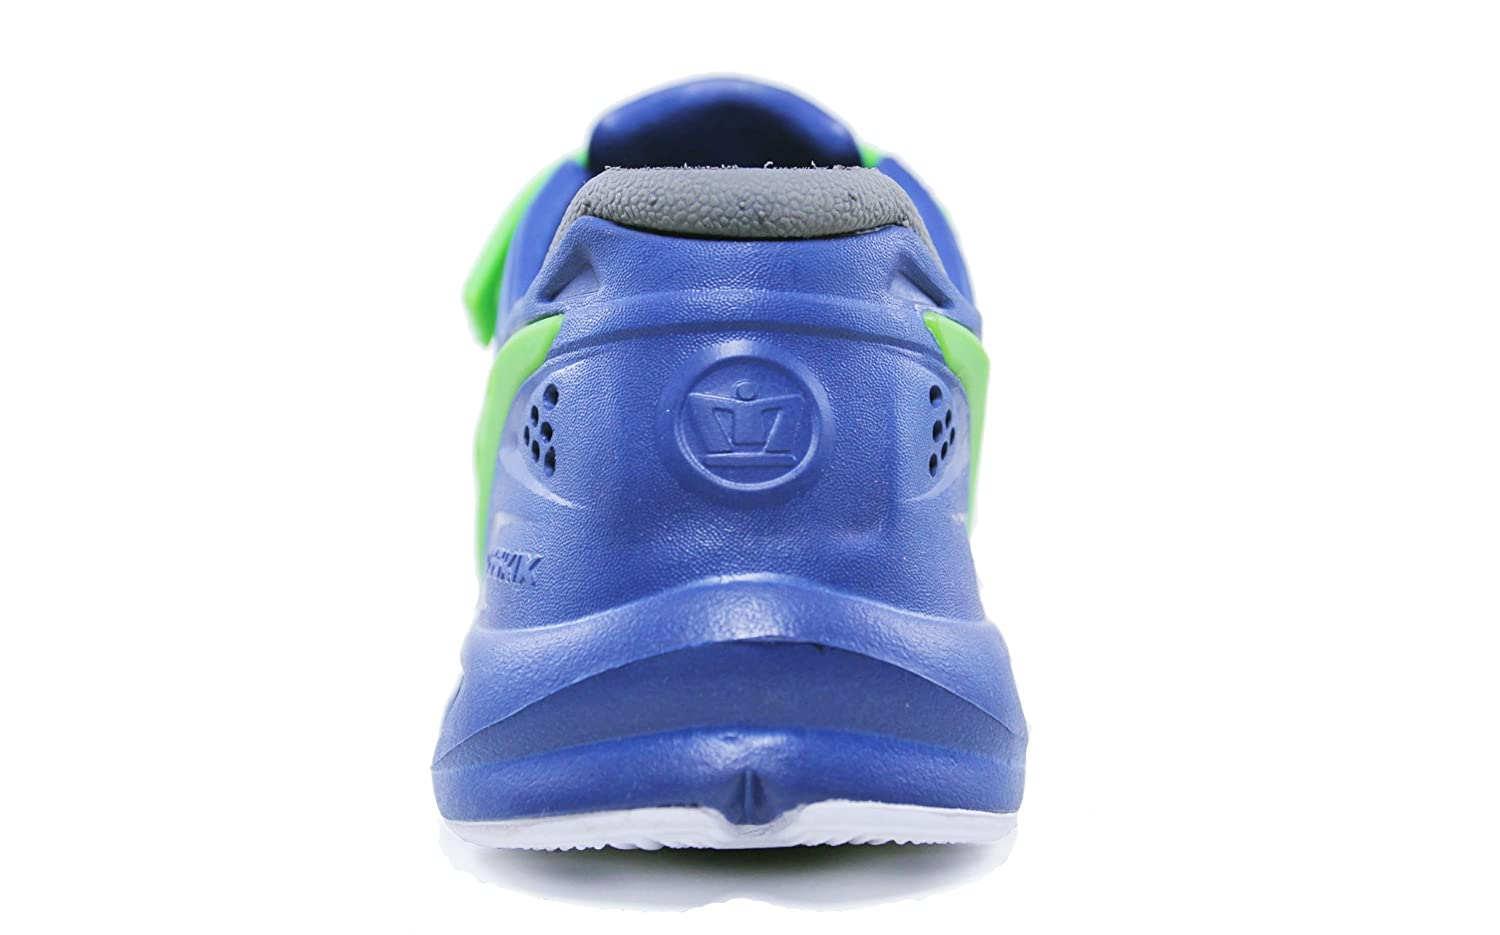 CrossKix 2.0 Athletic Water Shoes - Men & Women B01HE0X8G6 M4W6|Seatown